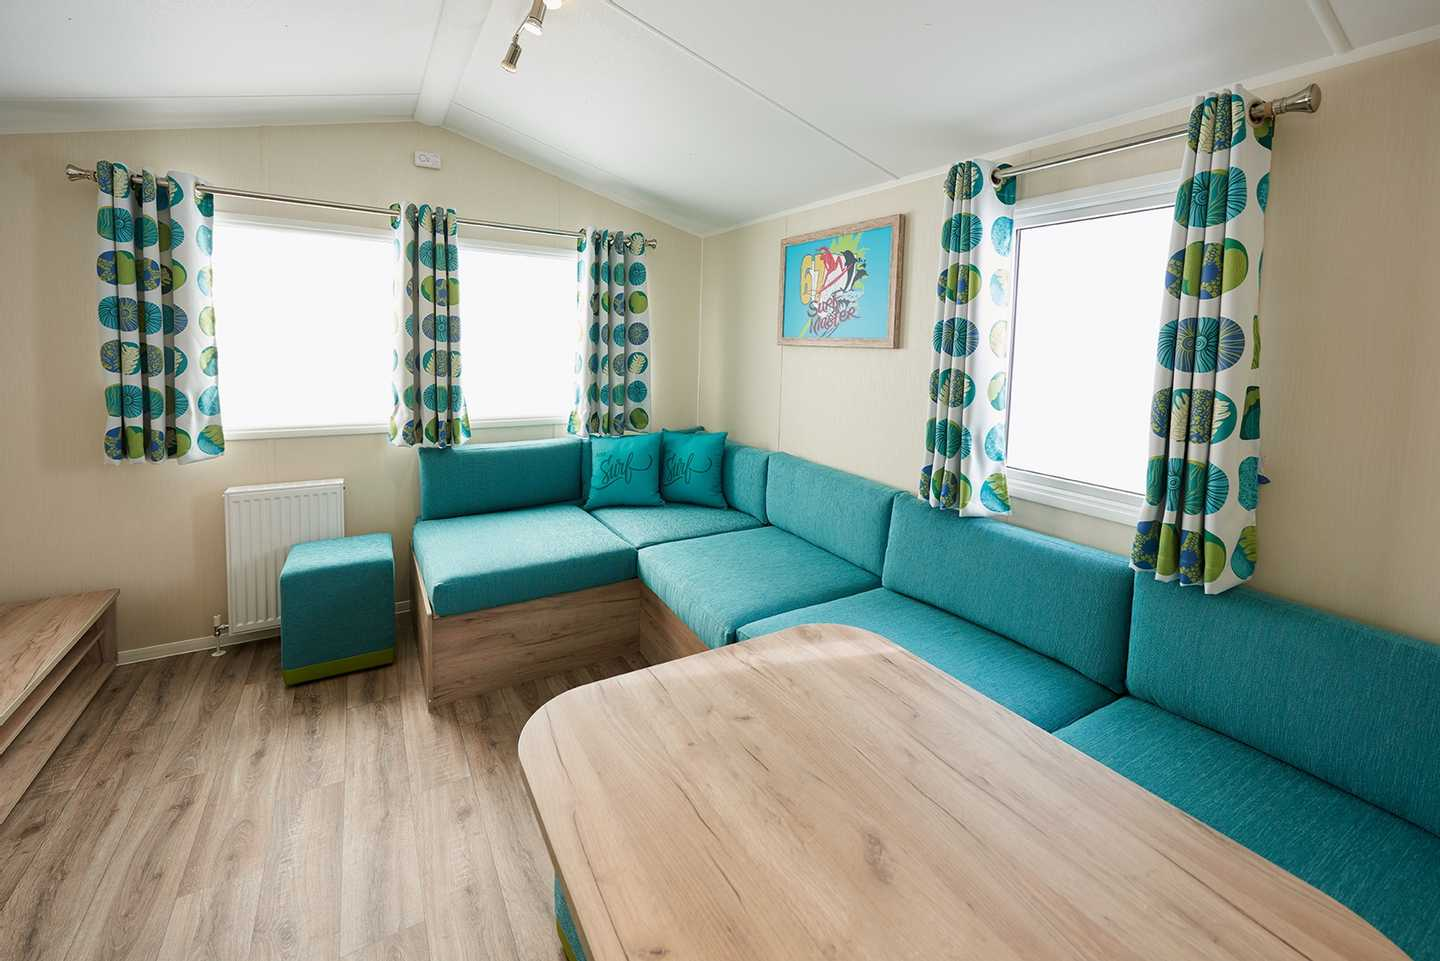 Interior of a Standard accommodation grade at Haven